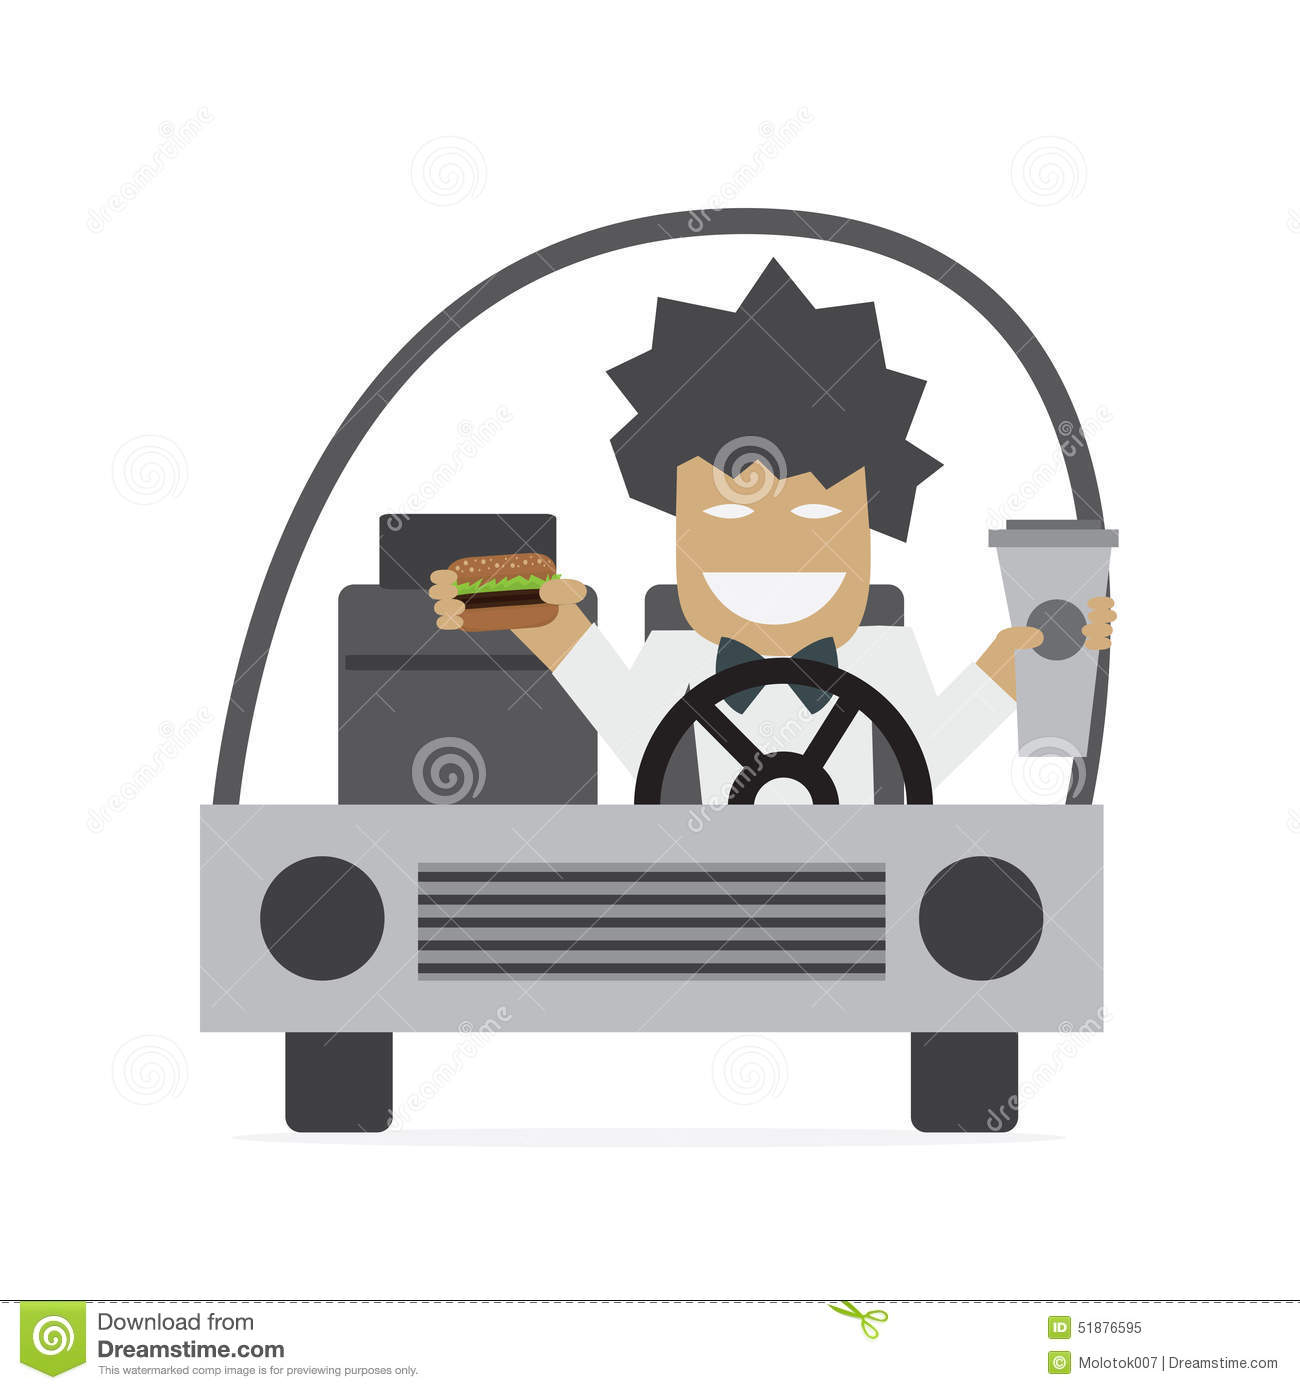 Driver Eating Burger In The Car Royalty-Free Stock